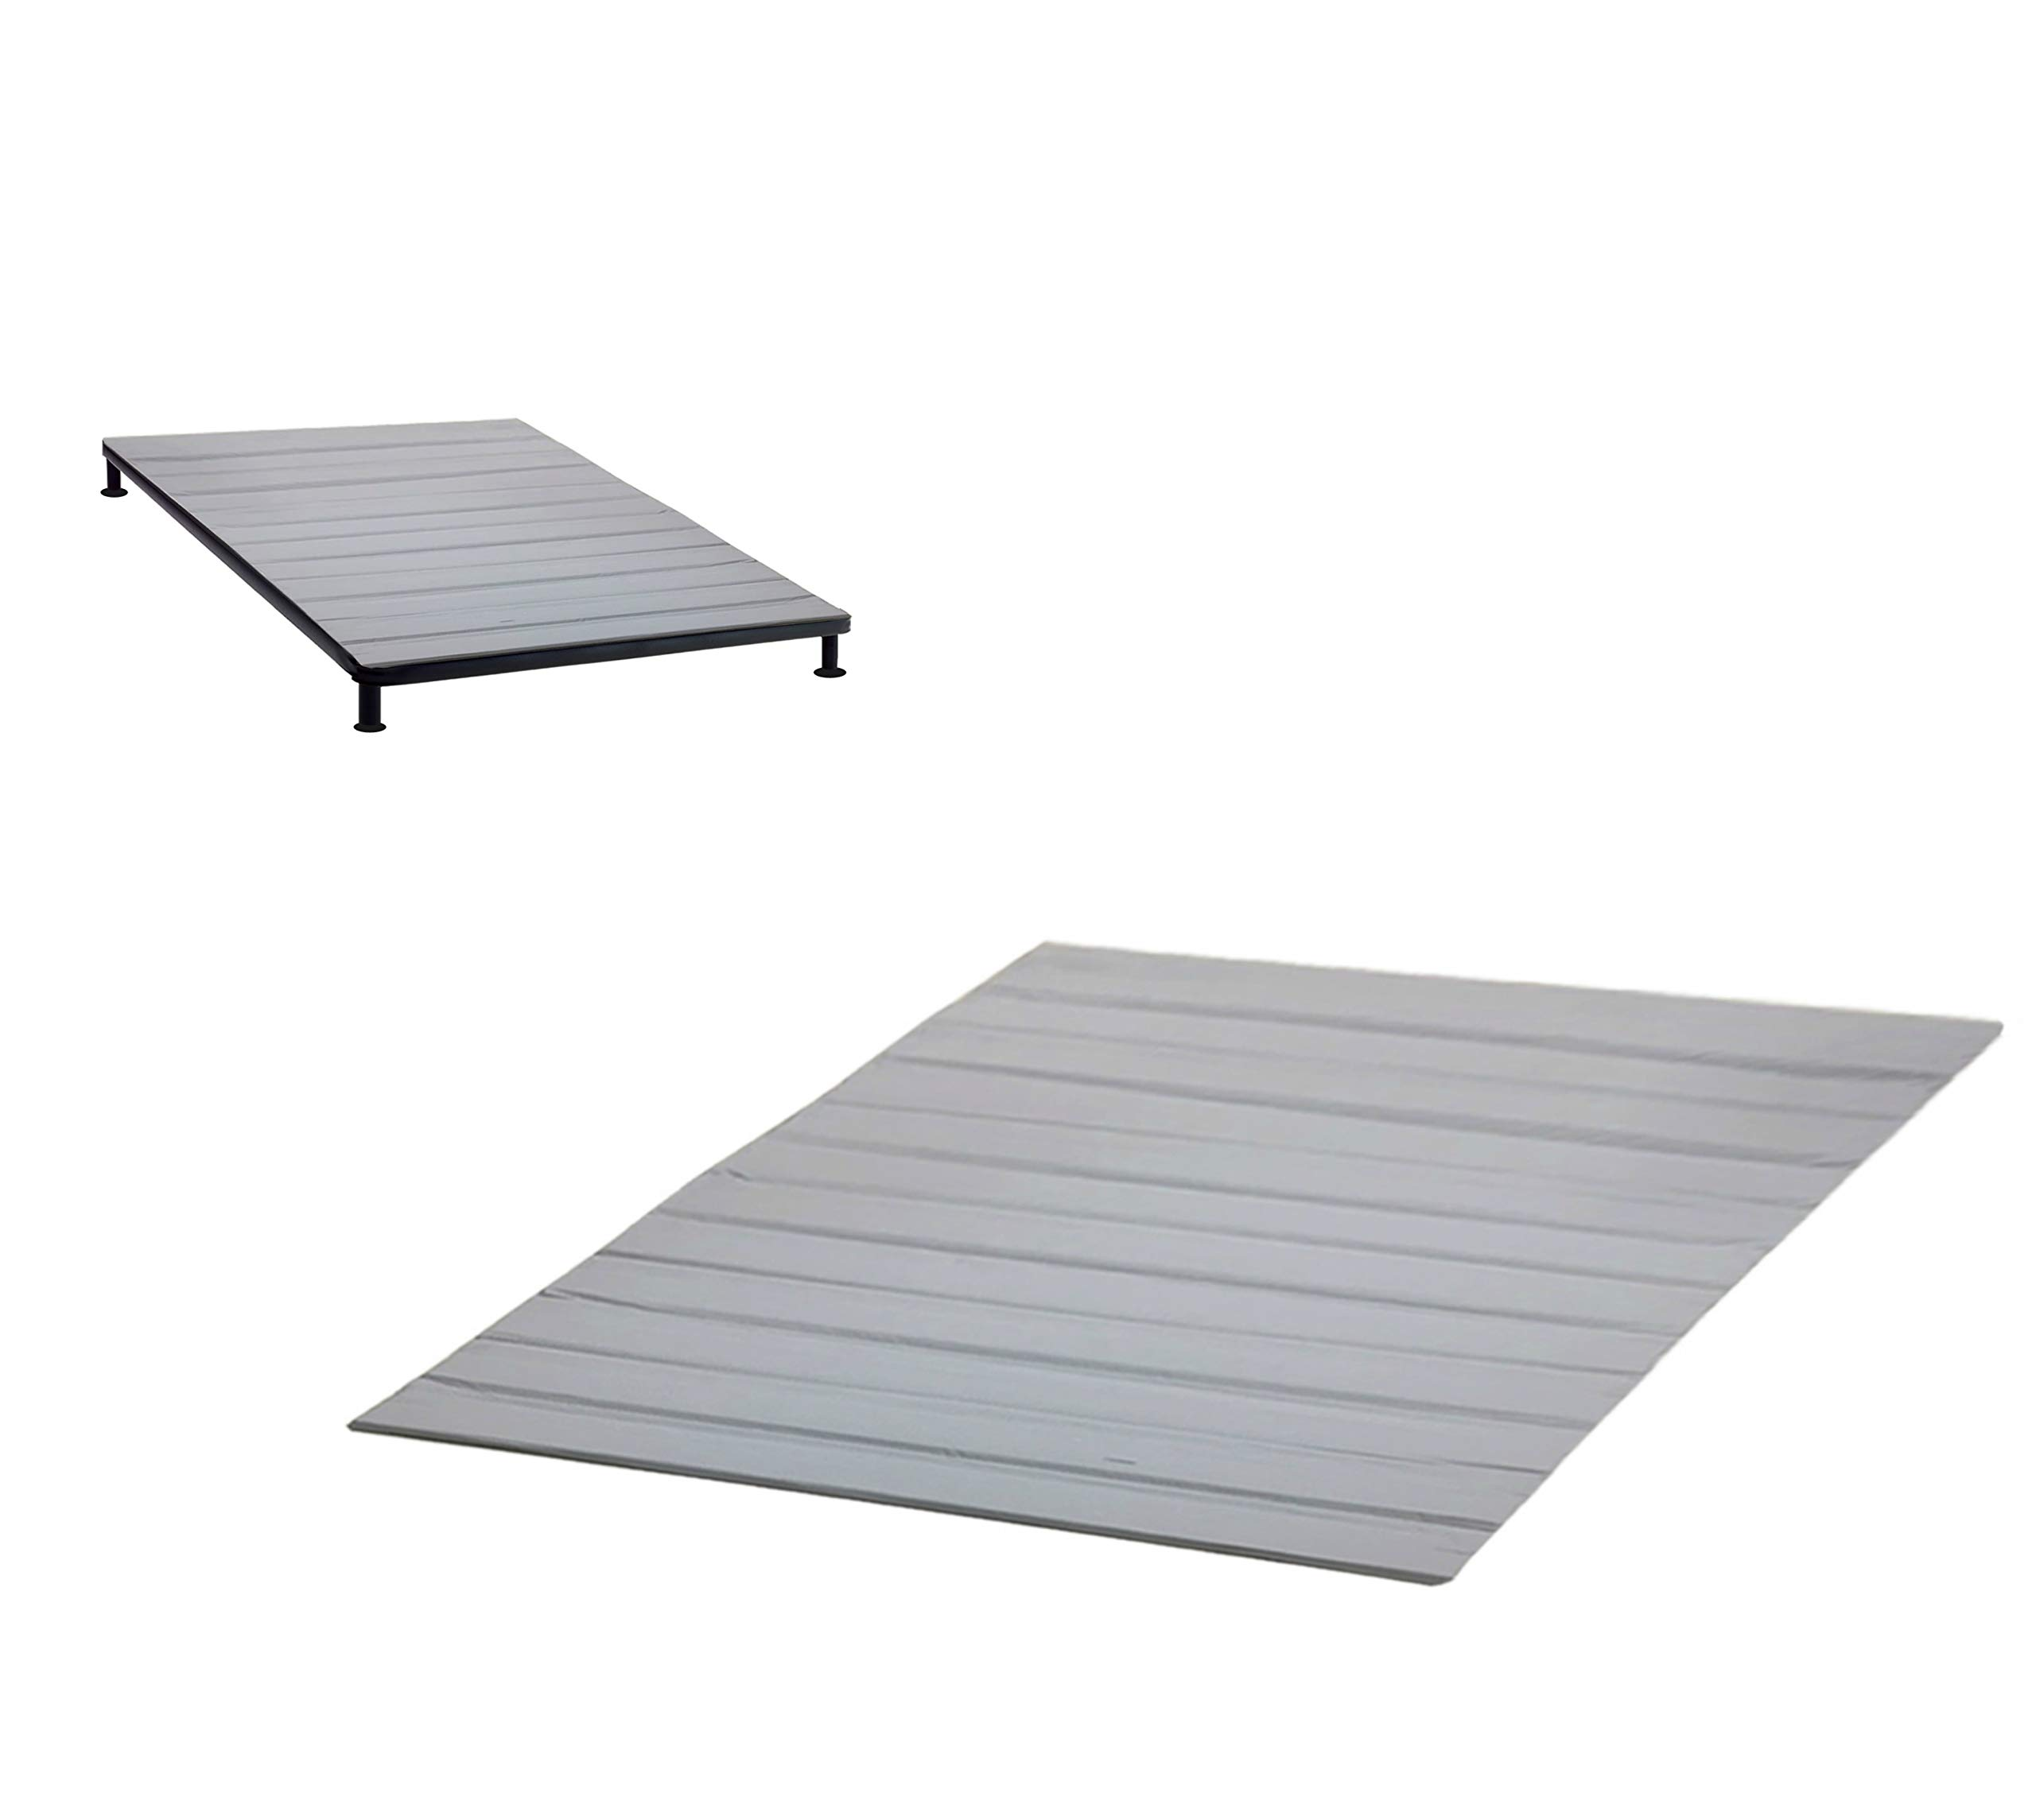 Greaton HCSBv-4/6 Heavy Duty Mattress Support Wooden Bunkie Board/Slats with Cover, Full Size